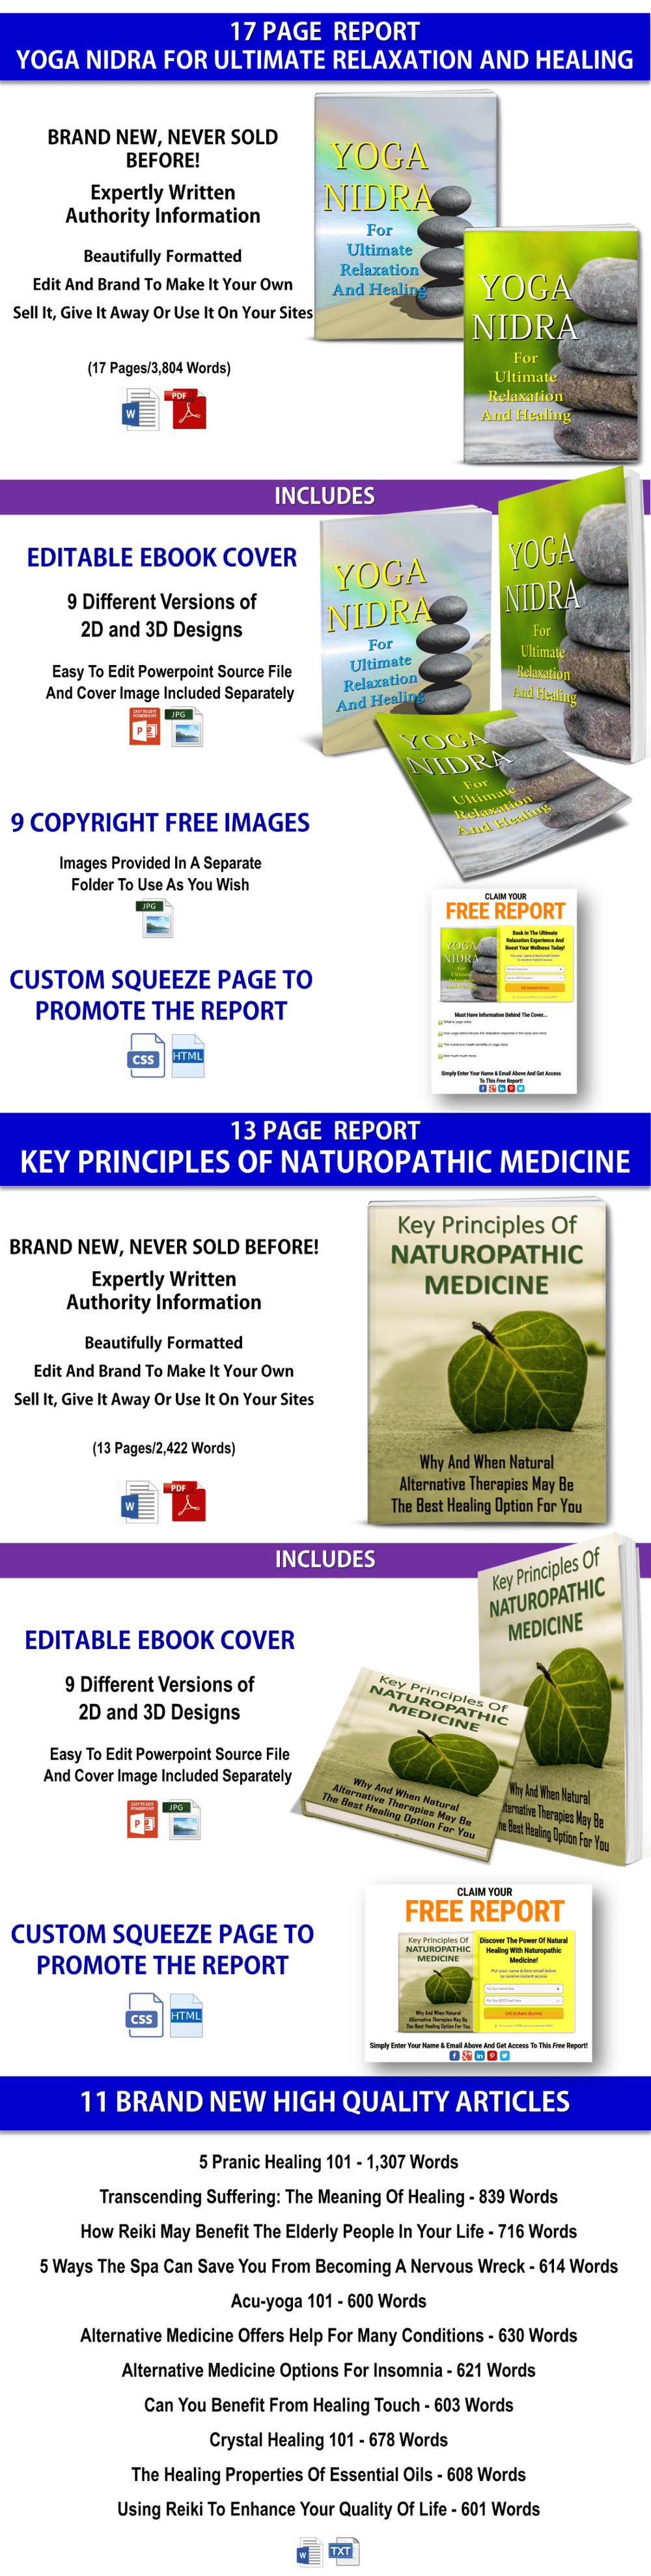 Naturopathy, Yoga Nidra Reports And Alternative Medicine Articles PLR